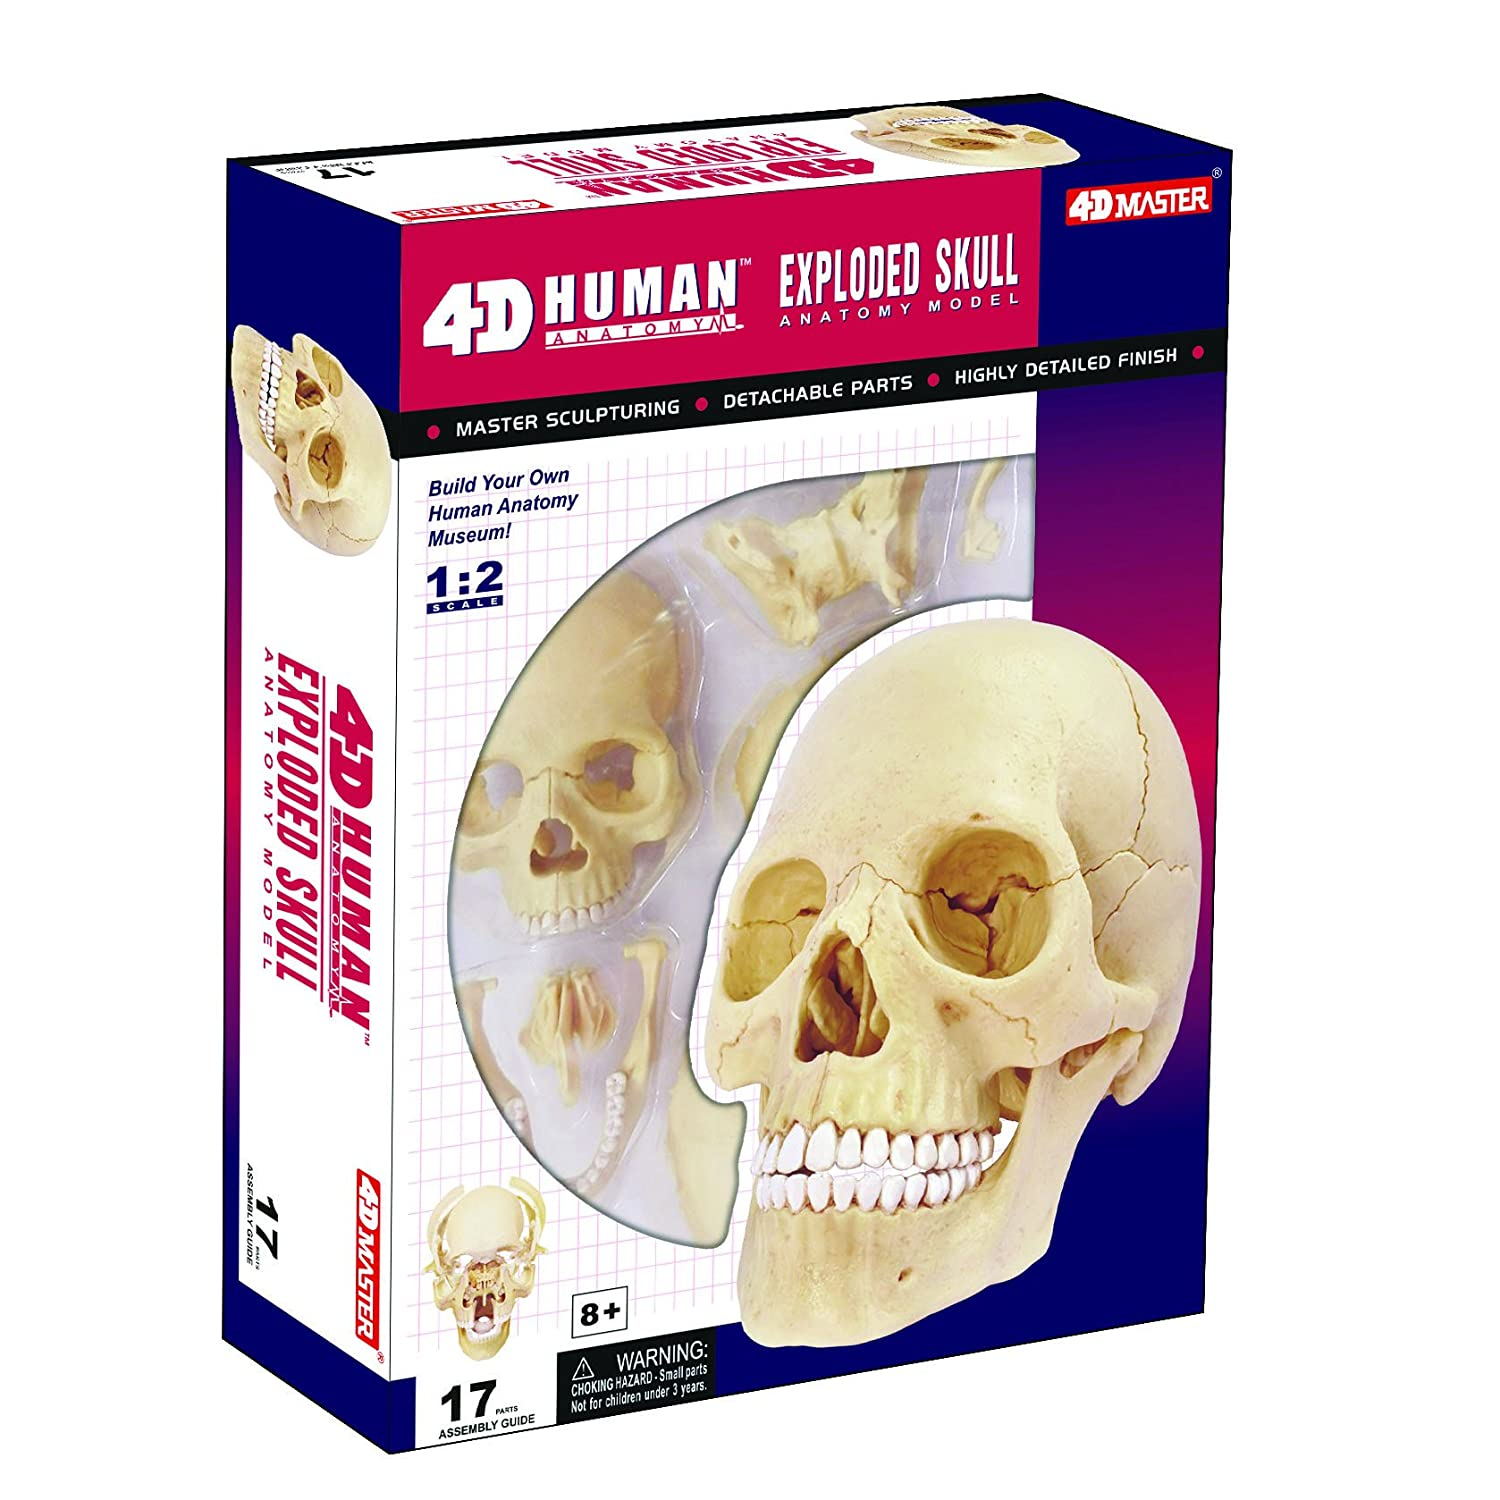 Amazon.com: Exploded Skull Anatomy Model - Build your Own!: Toys & Games